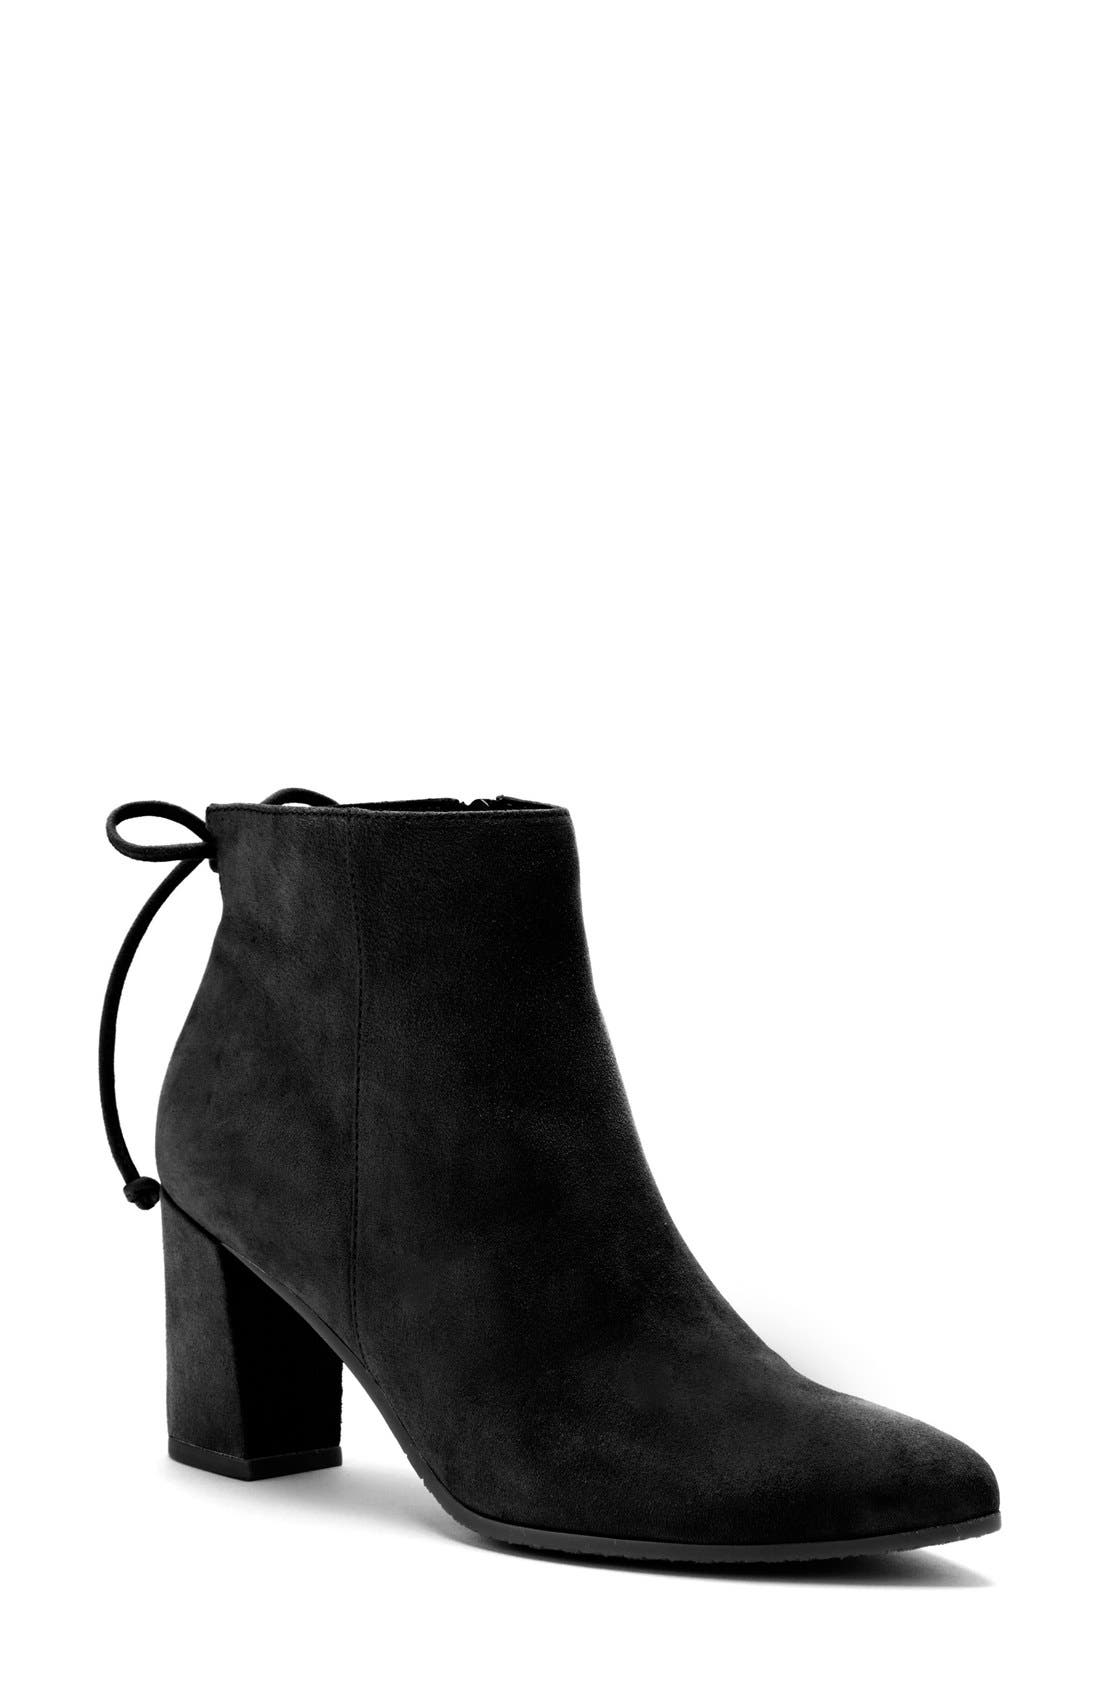 Tiana Waterproof Pointy Toe Bootie,                         Main,                         color, 006